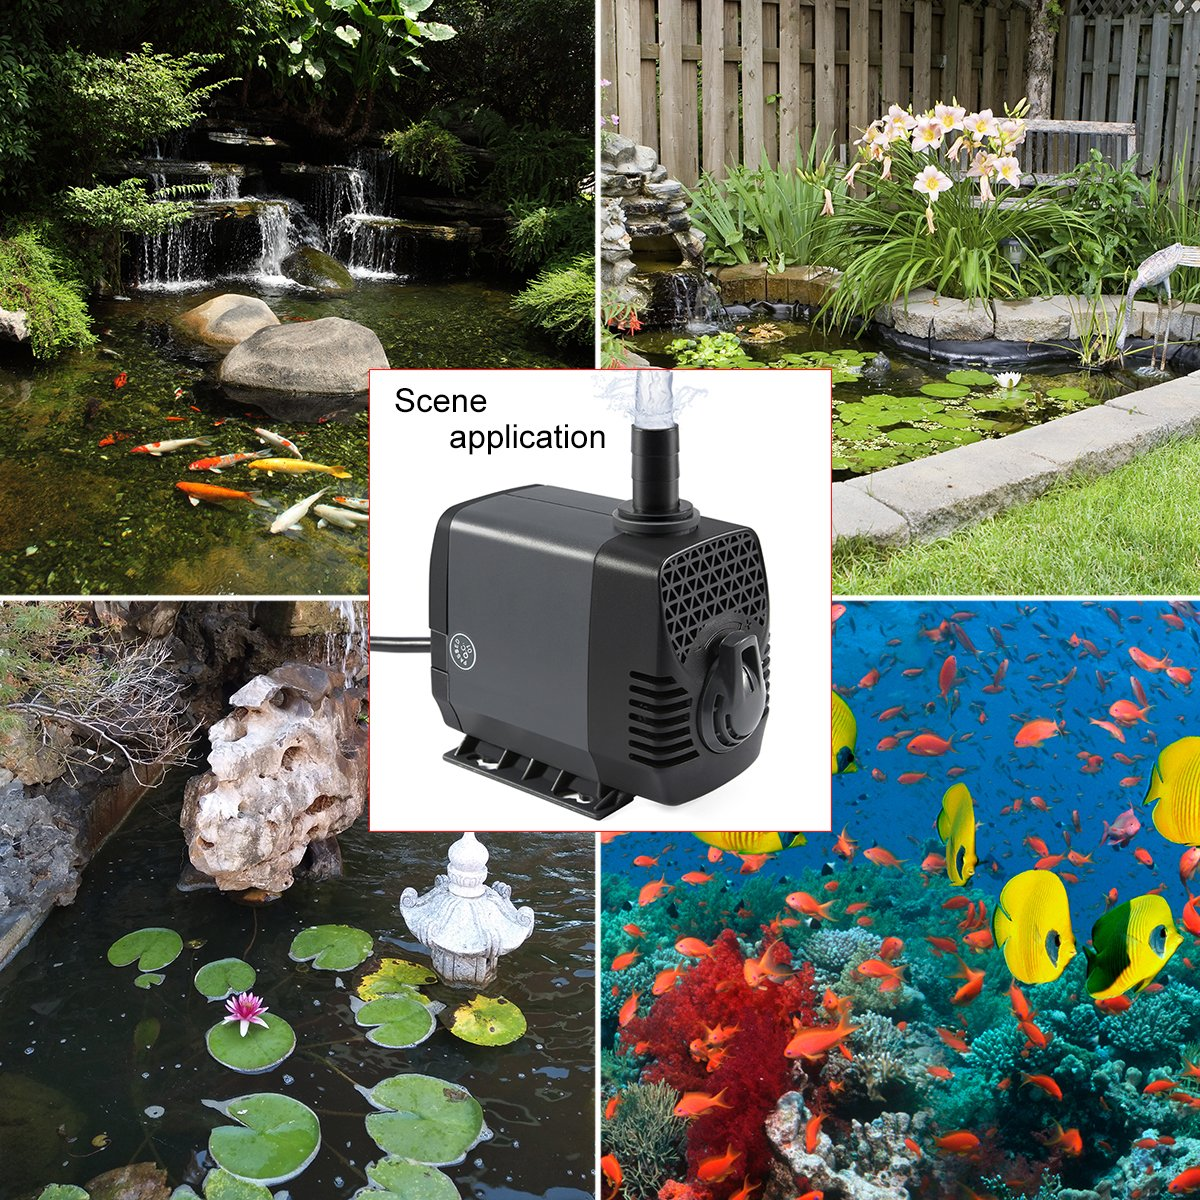 Ankway Upgraded 660GPH(2475L/H, 40W) Submersible Water Pump Humanized Rotation Switch with 3 Nozzles for Pond, Aquarium, Fish Tank Fountain Water Pump Hydroponics, with 5.9ft (1.8M) Power Cord by Ankway (Image #7)